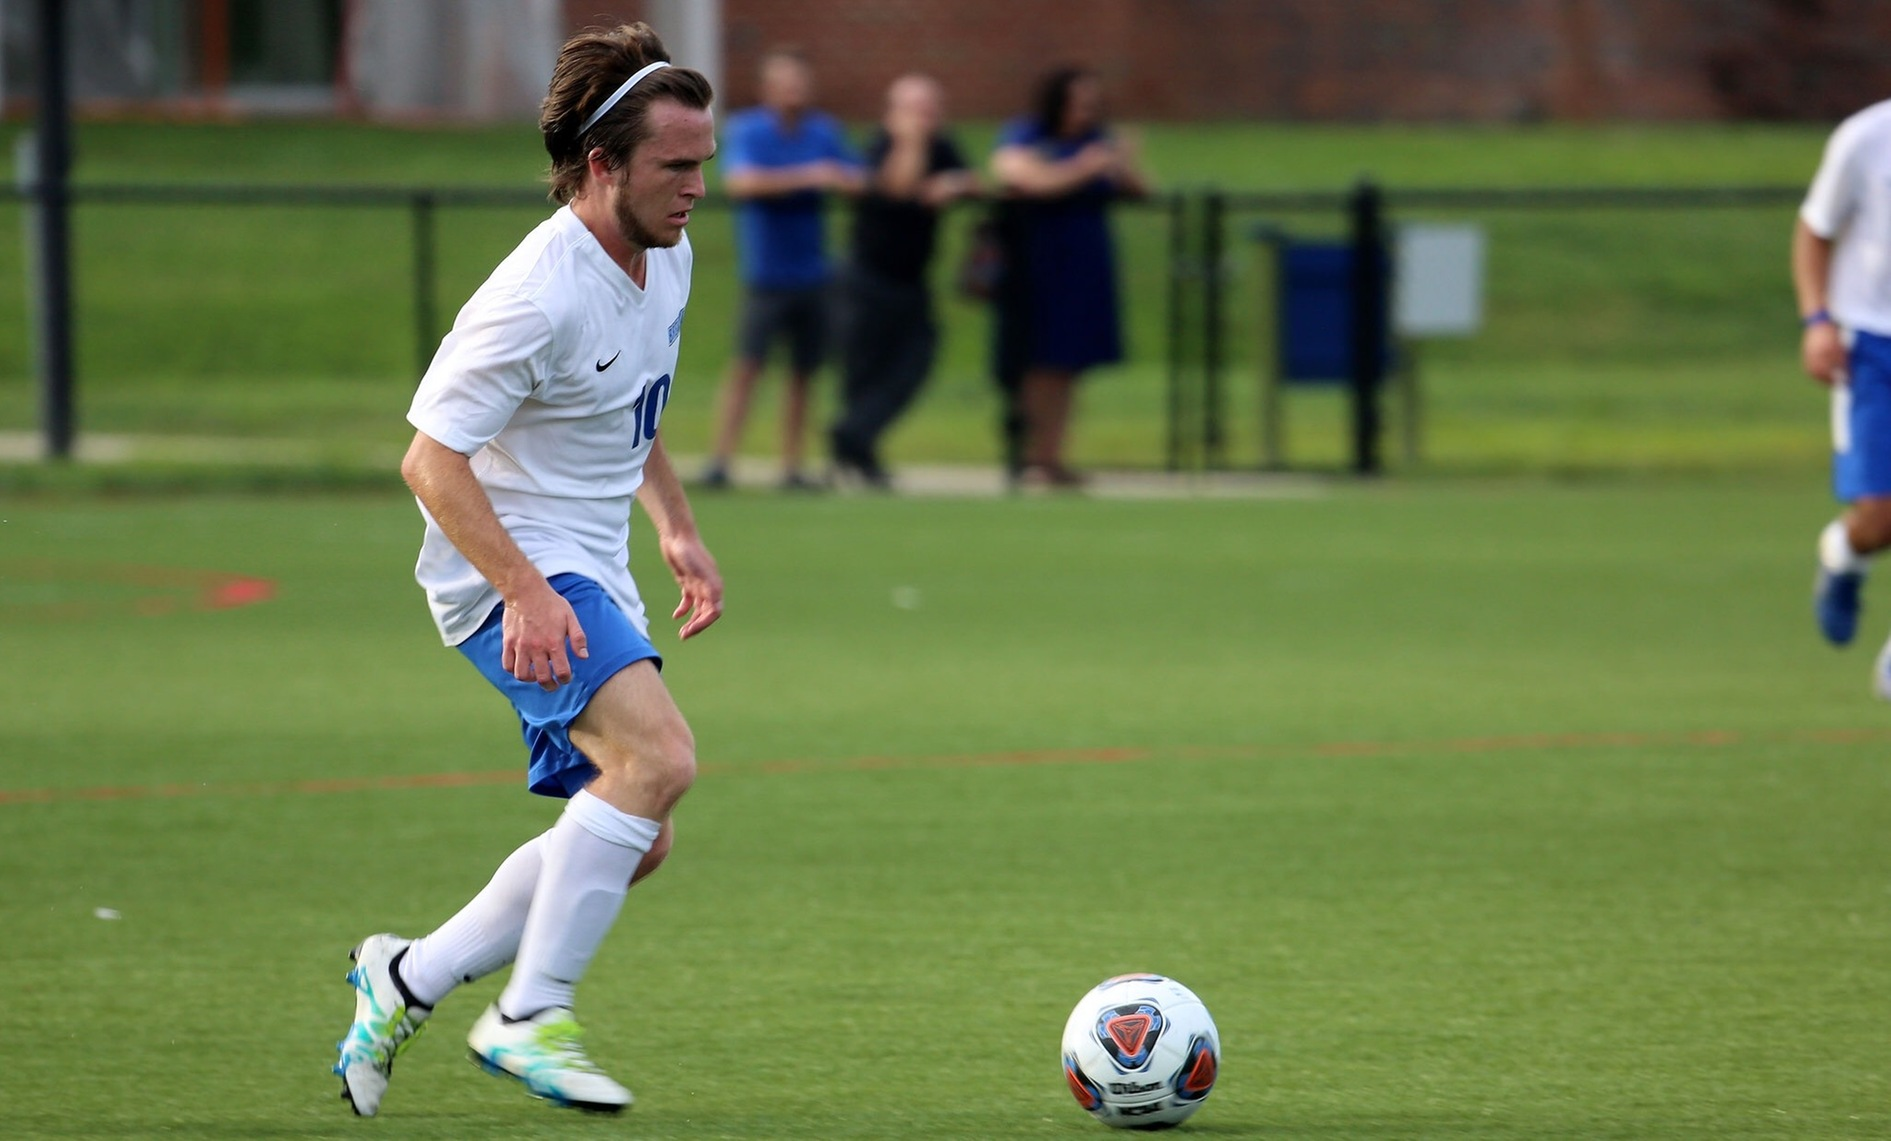 Tornados Win Second Straight Game Behind Two Goals by Tuttle